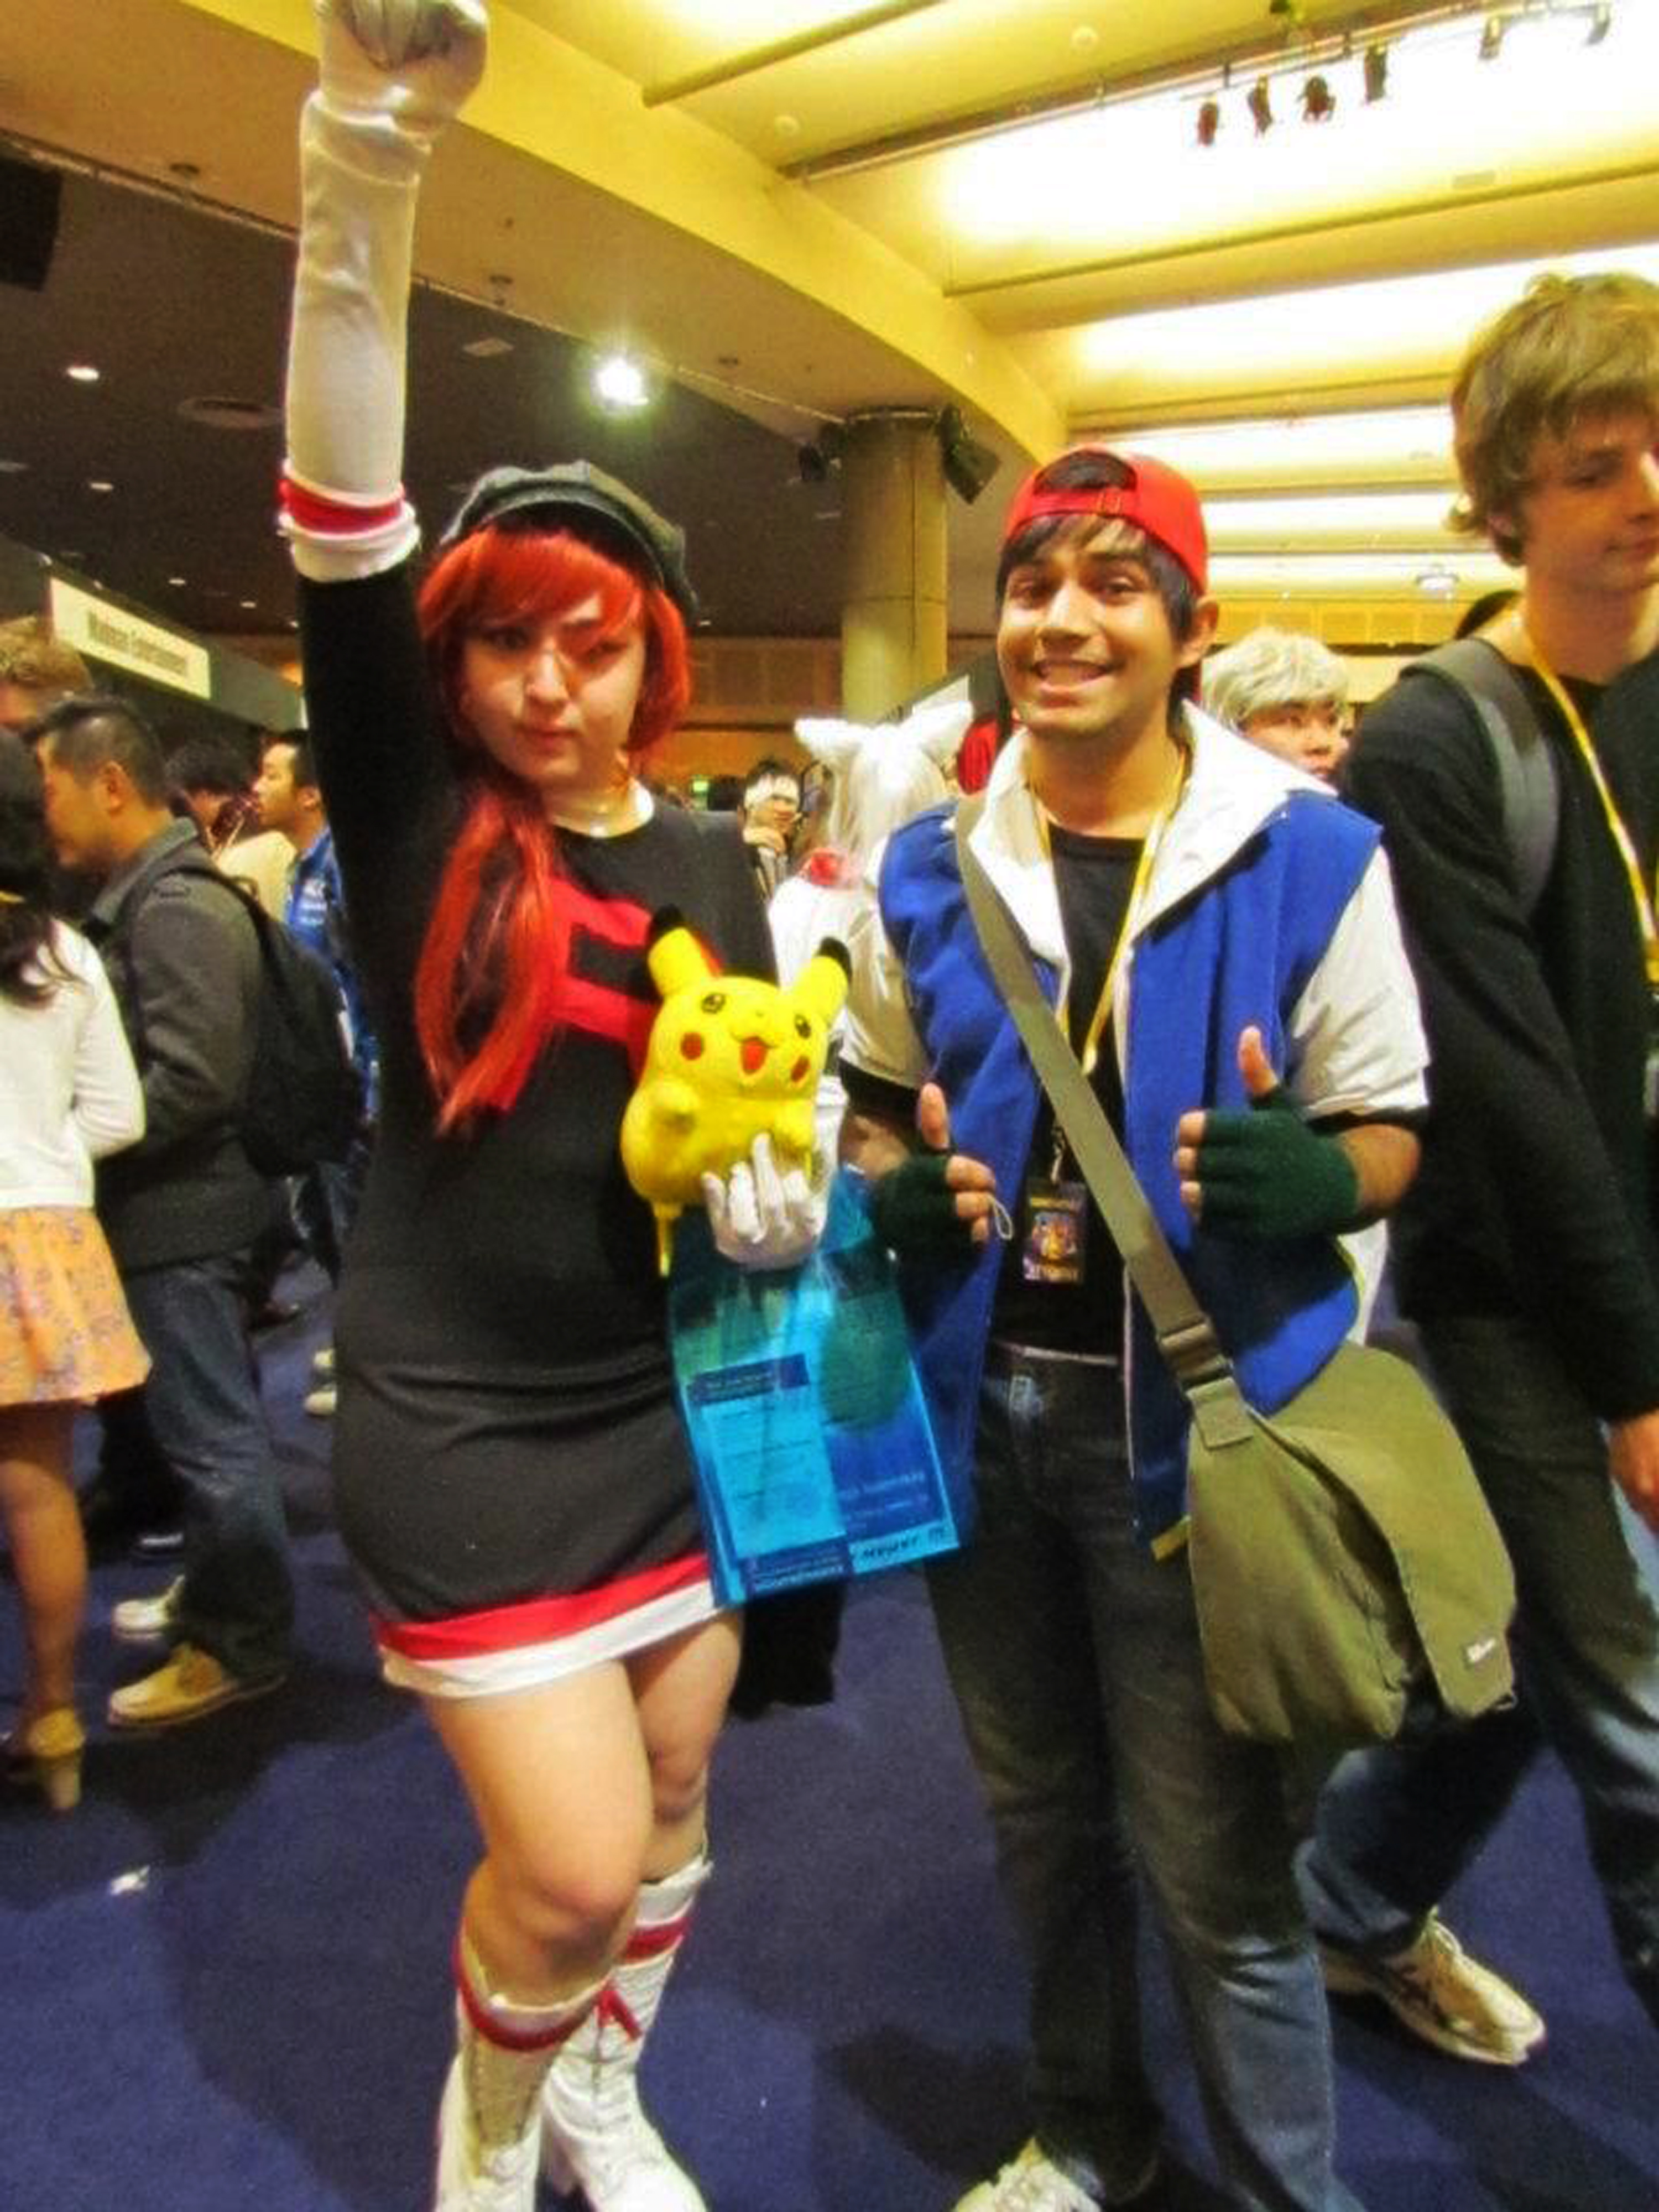 pokemon team rocket and ash ketchum cosplay by naygallo on